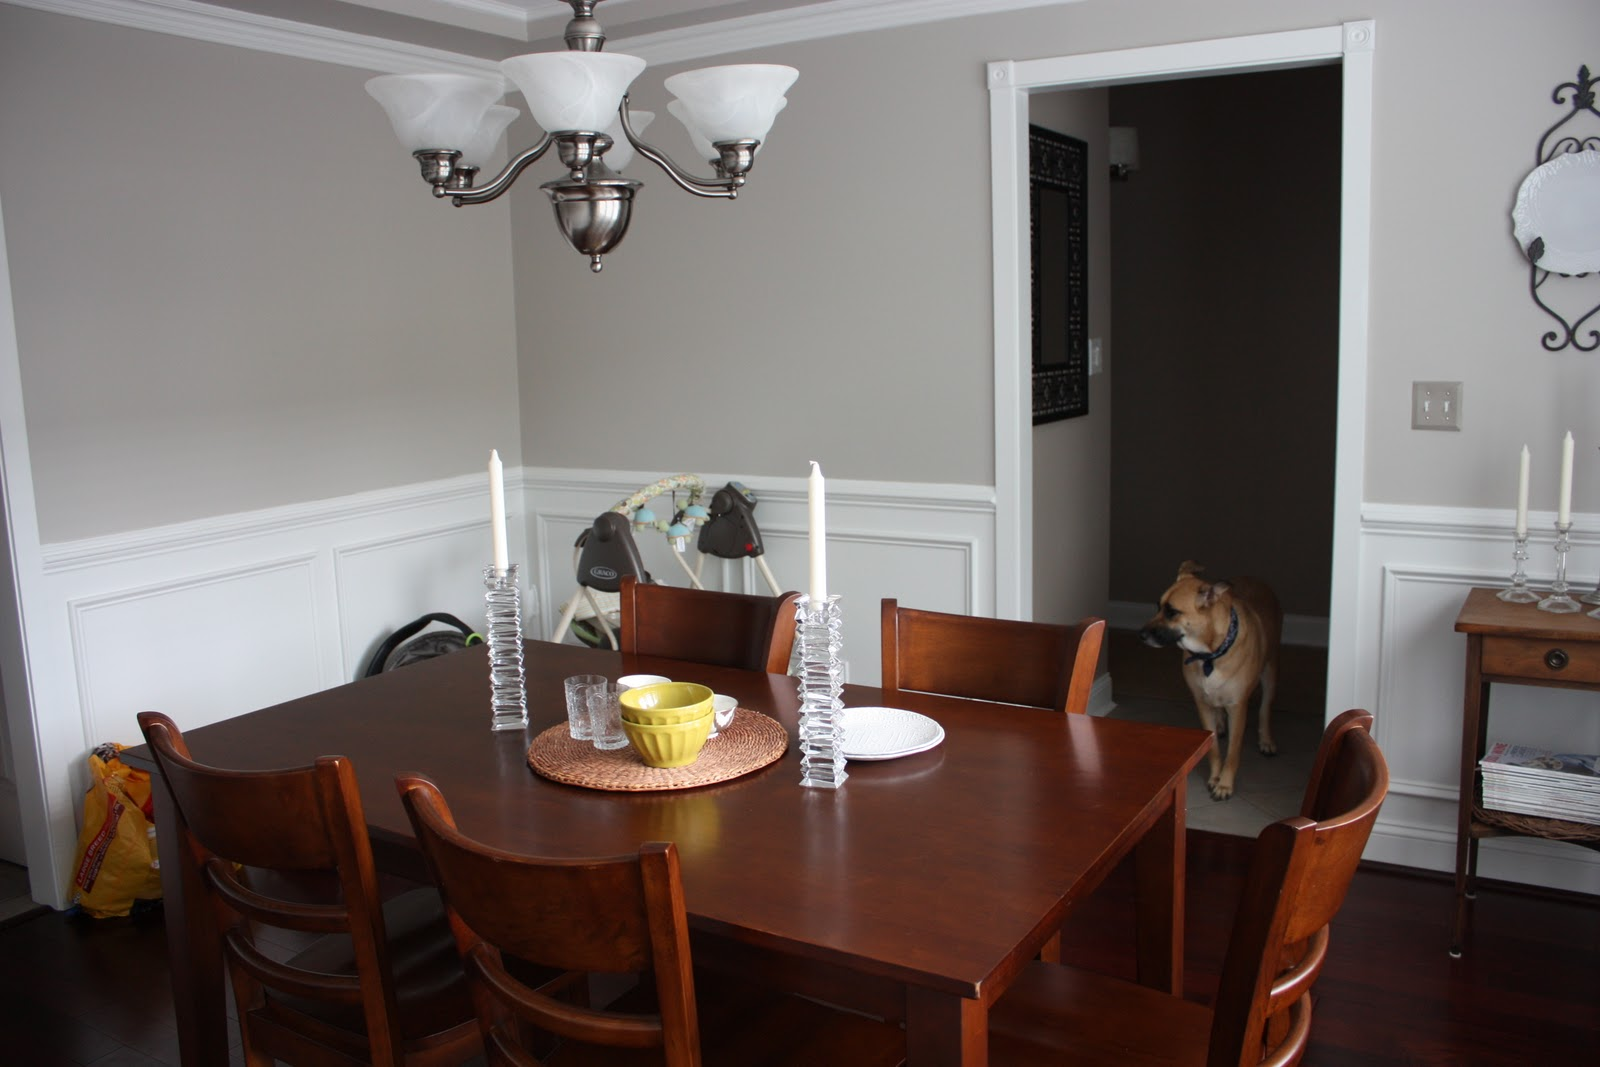 A Simple Kind Of Life A NewOld Dining Room - Martha stewart dining room table